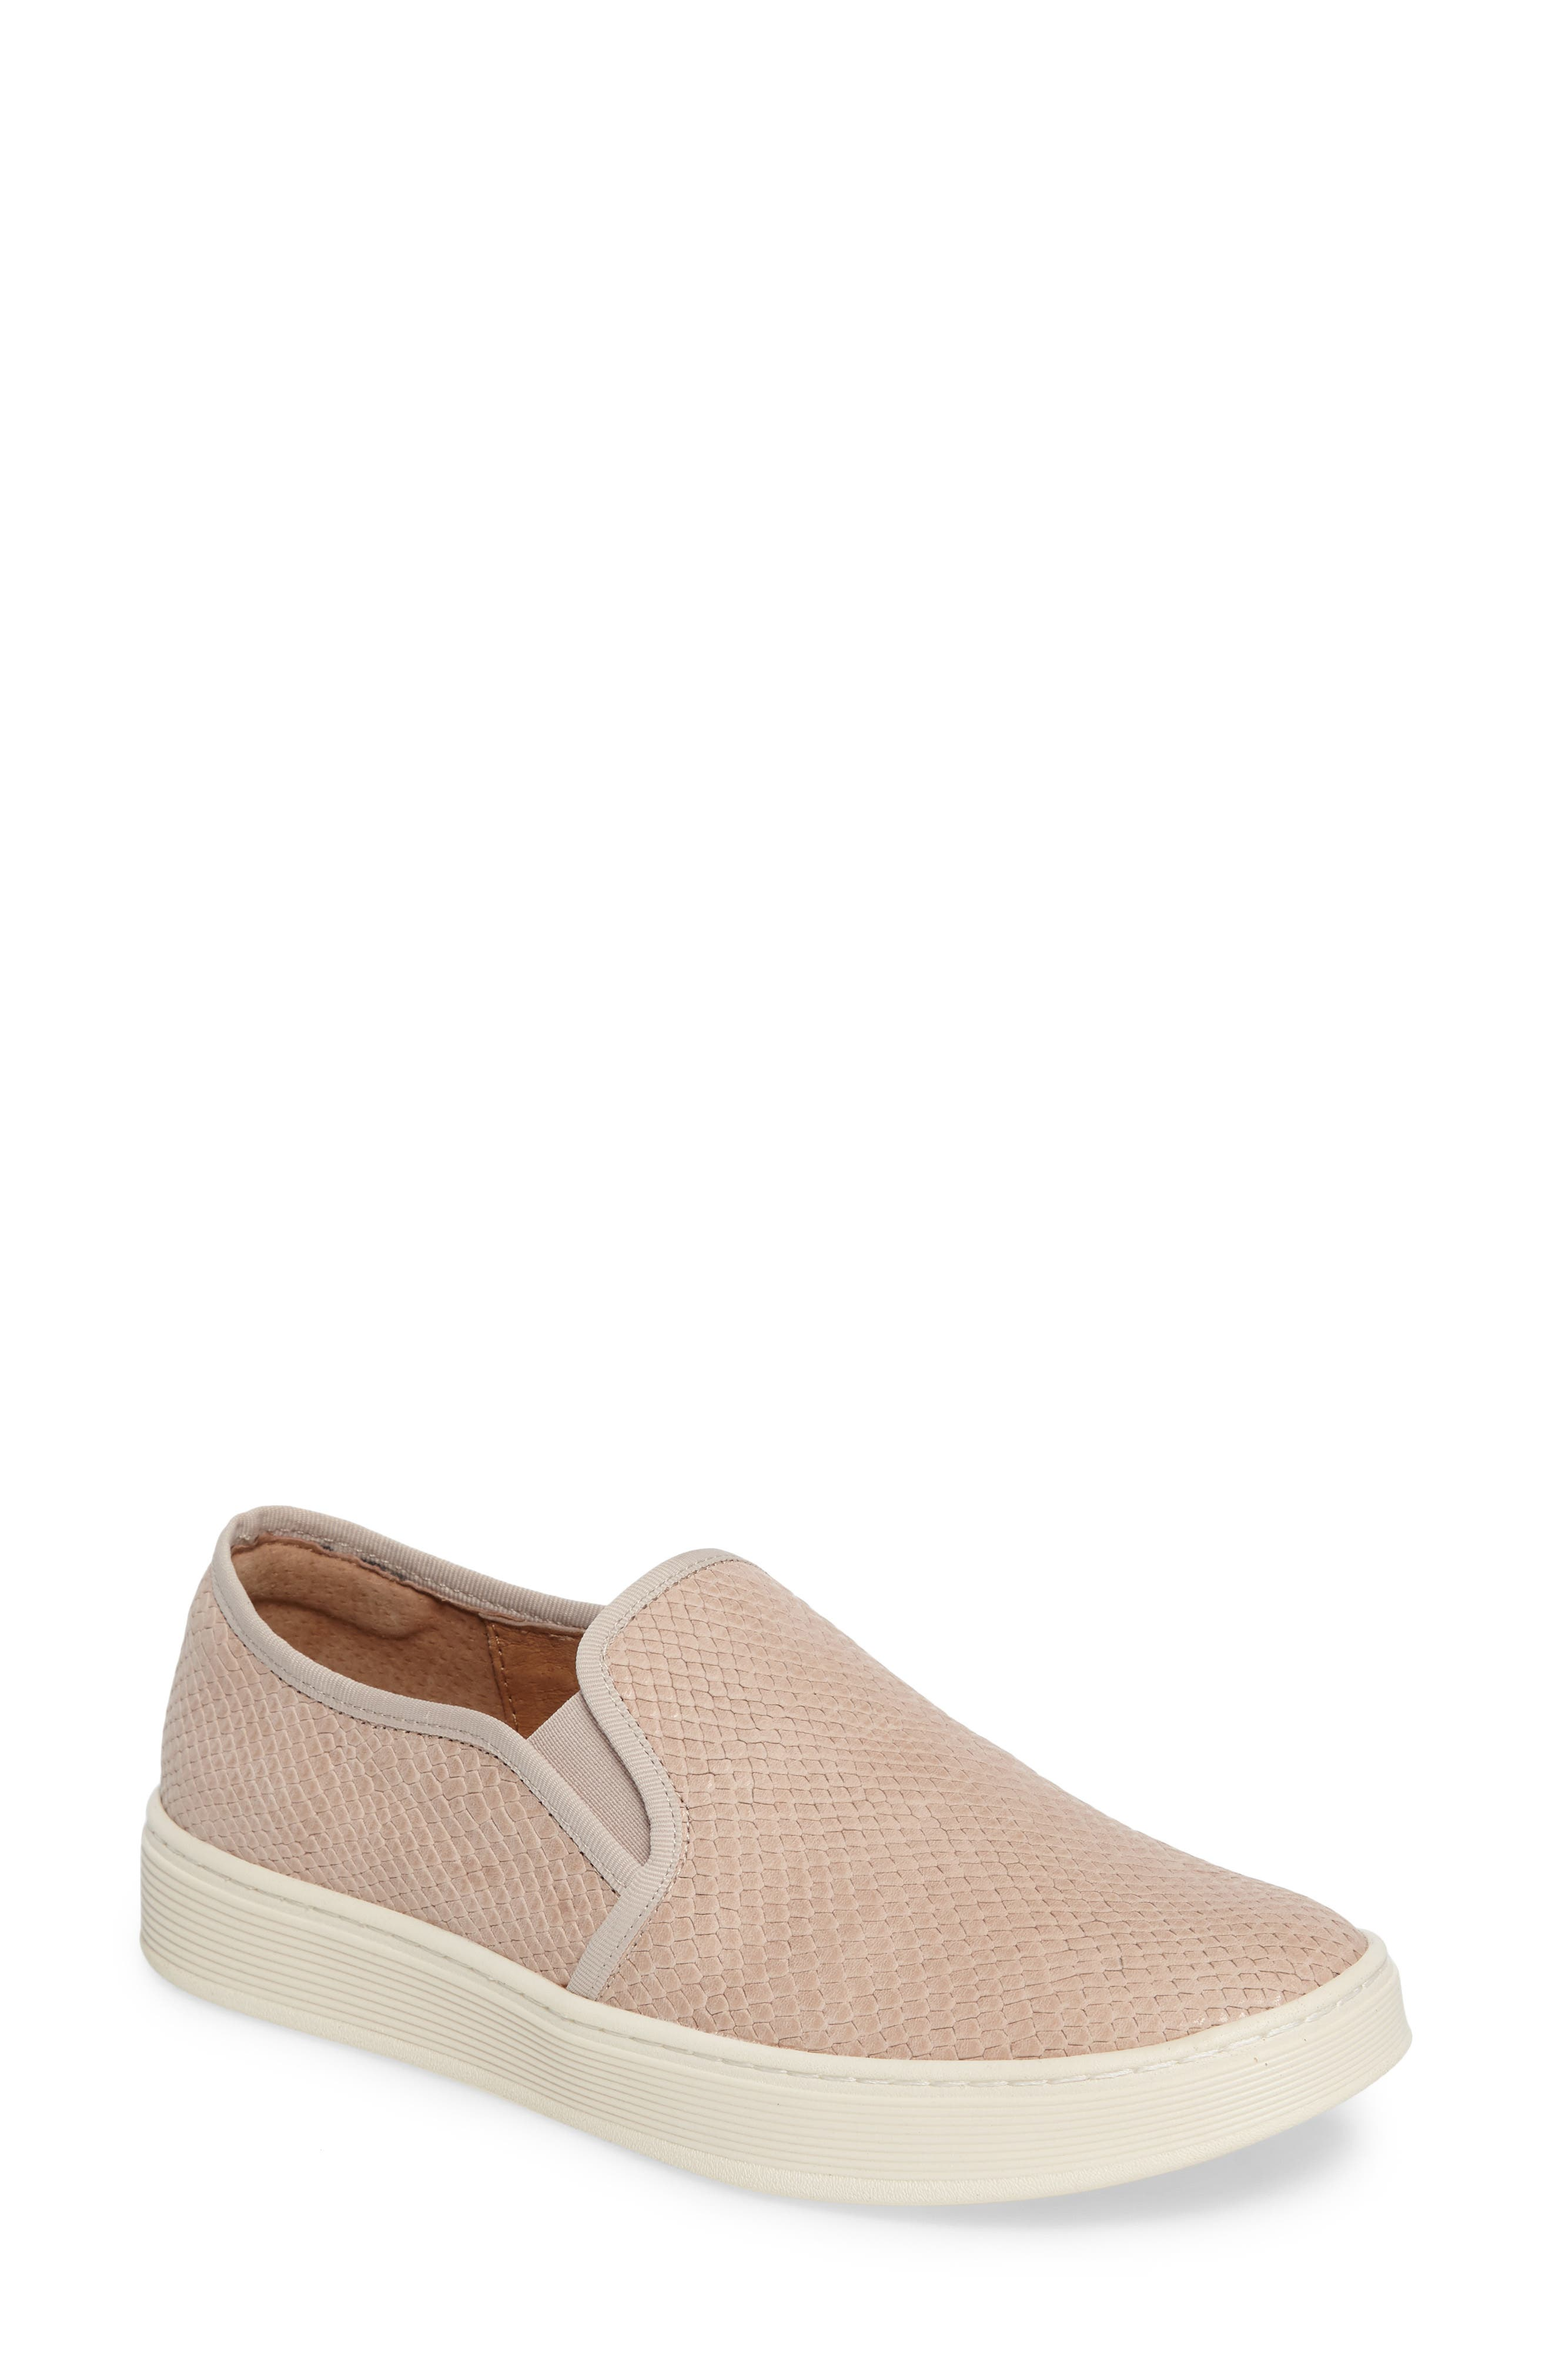 'Somers' Slip-On Sneaker,                         Main,                         color, BLUSH NUBUCK LEATHER